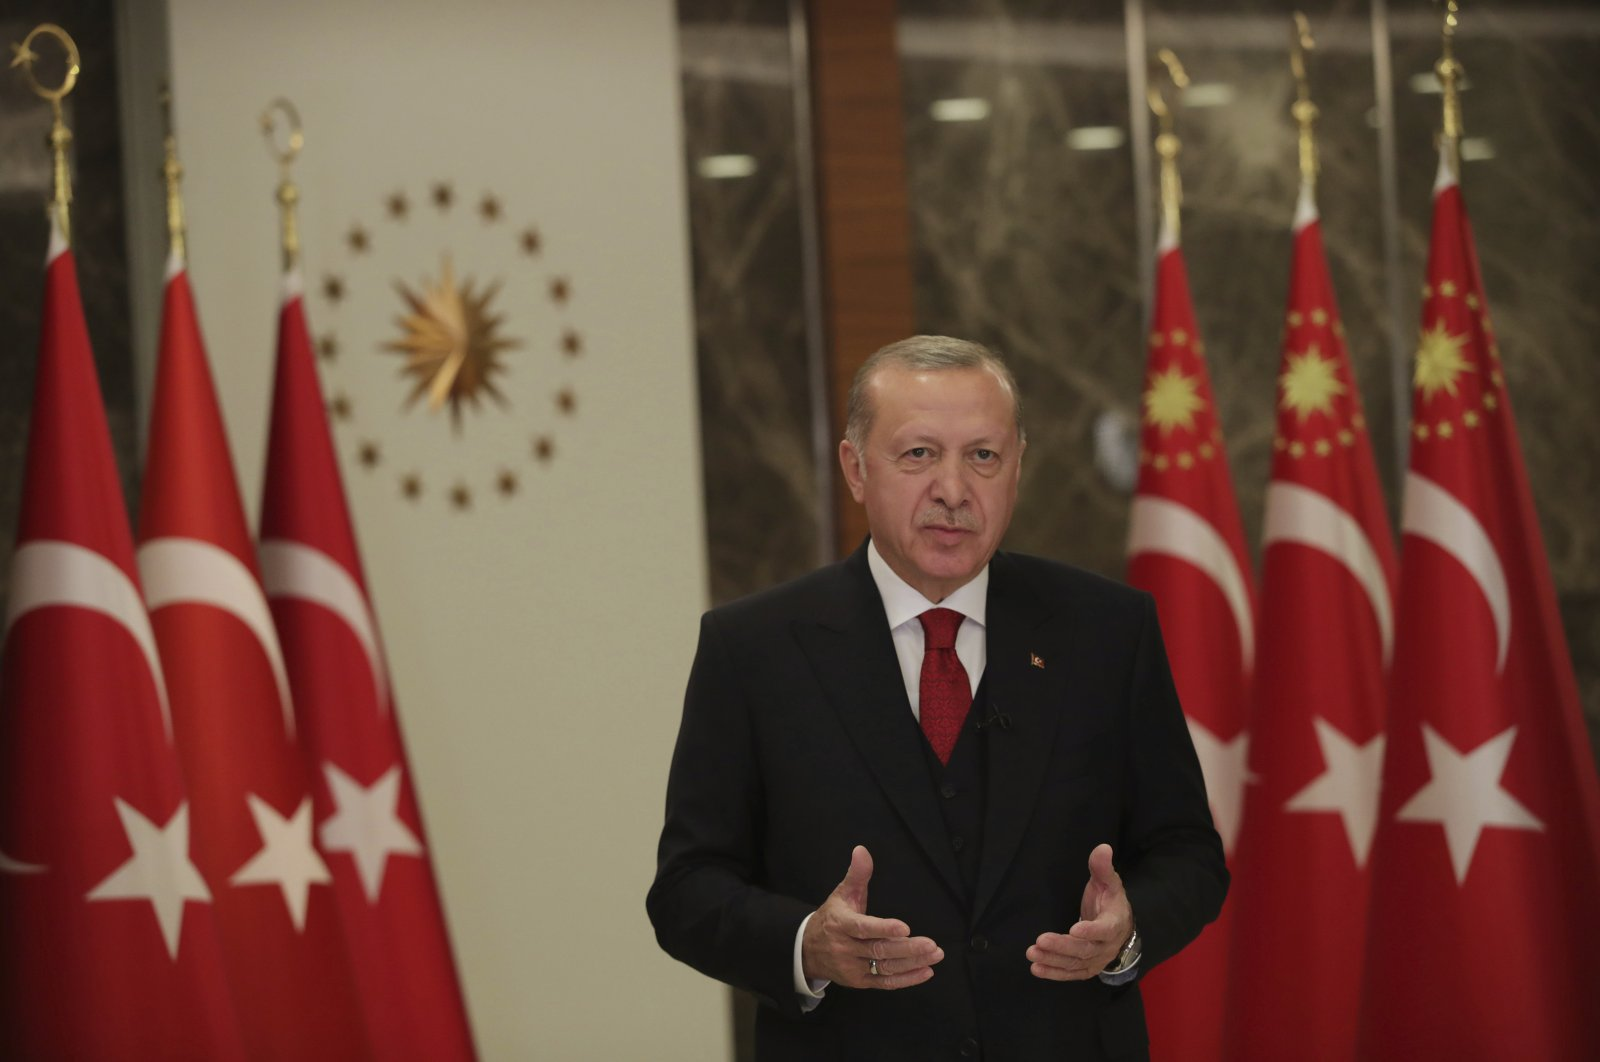 President Recep Tayyip Erdoğan stands during an event to mark Turkey's National Sovereignty and Children's Day, in Istanbul, April 23, 2020. (AP Photo)